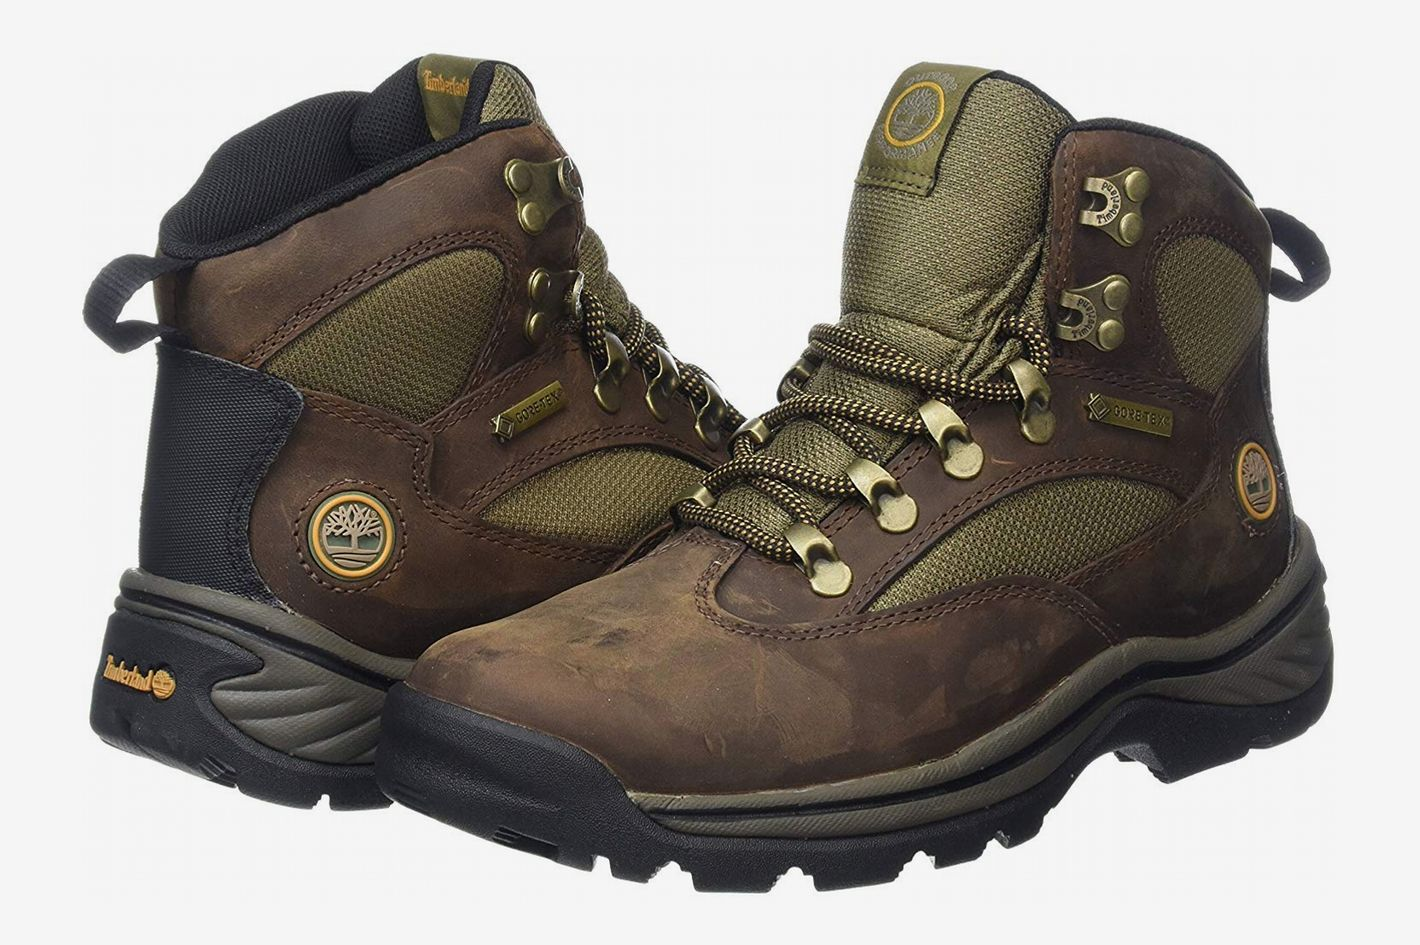 4a30884f3a1f0 21 Best Women's Hiking Boots to Buy 2019